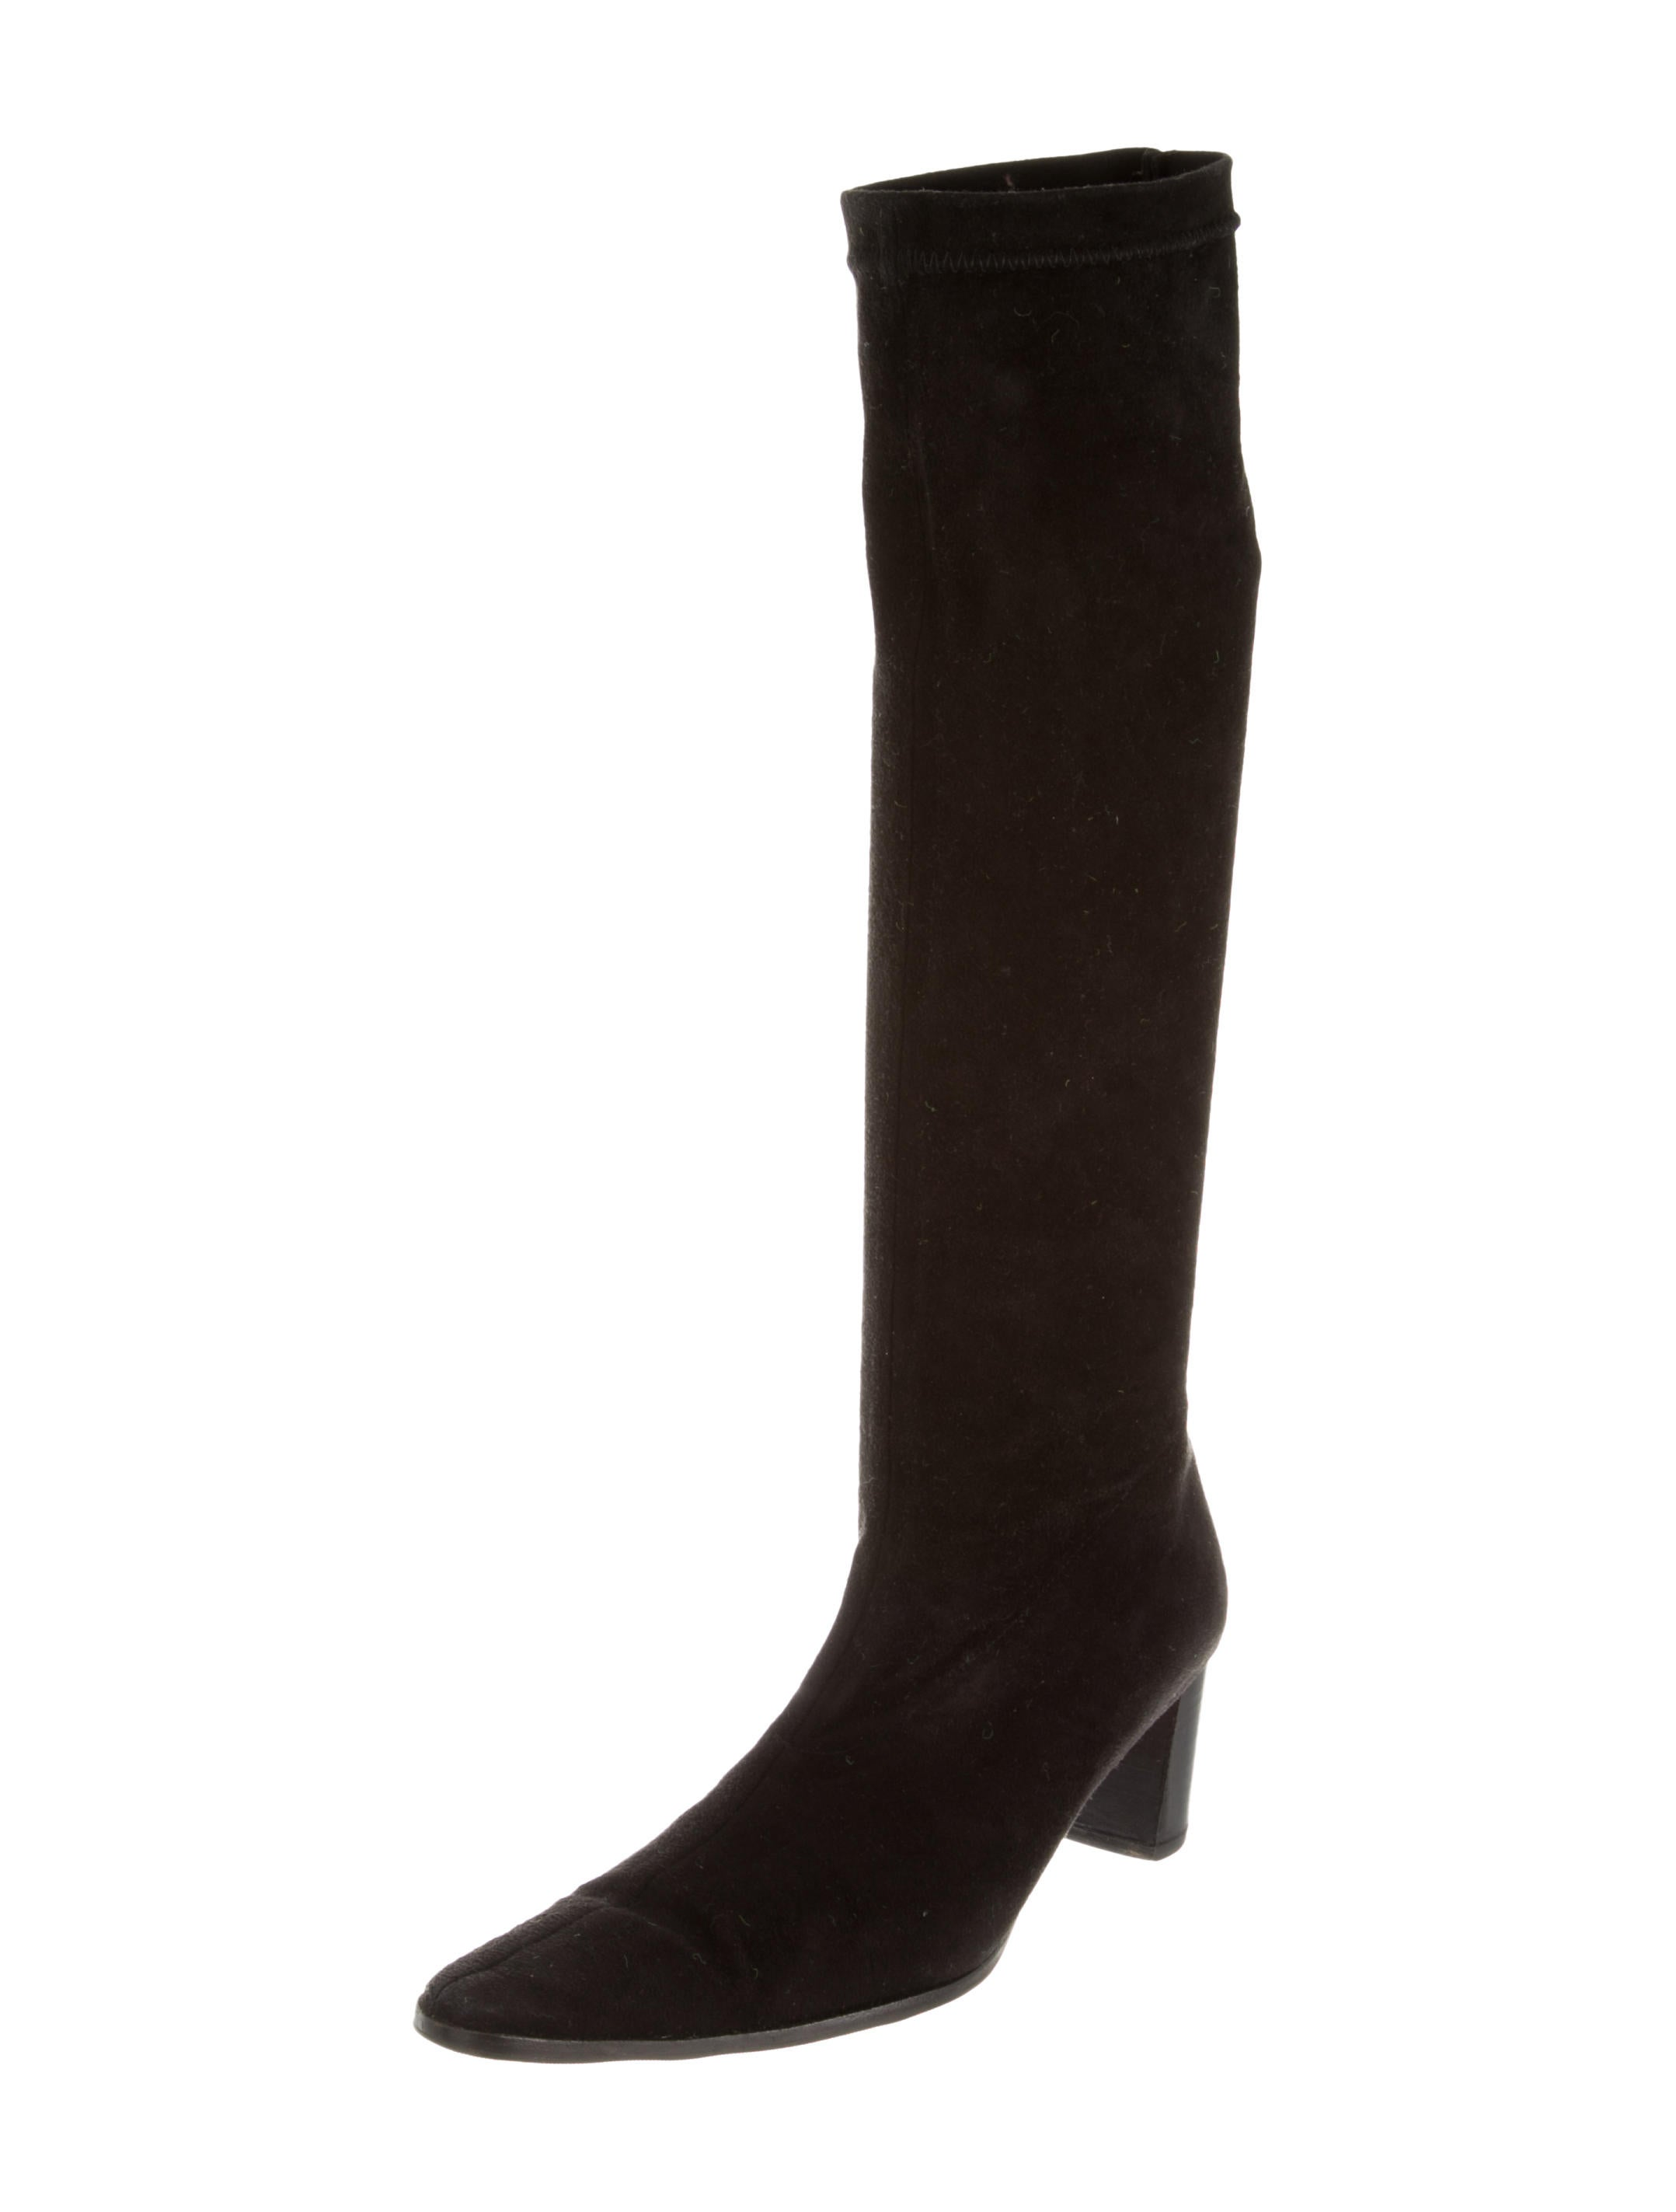 robert clergerie suede knee high boots shoes rog23406